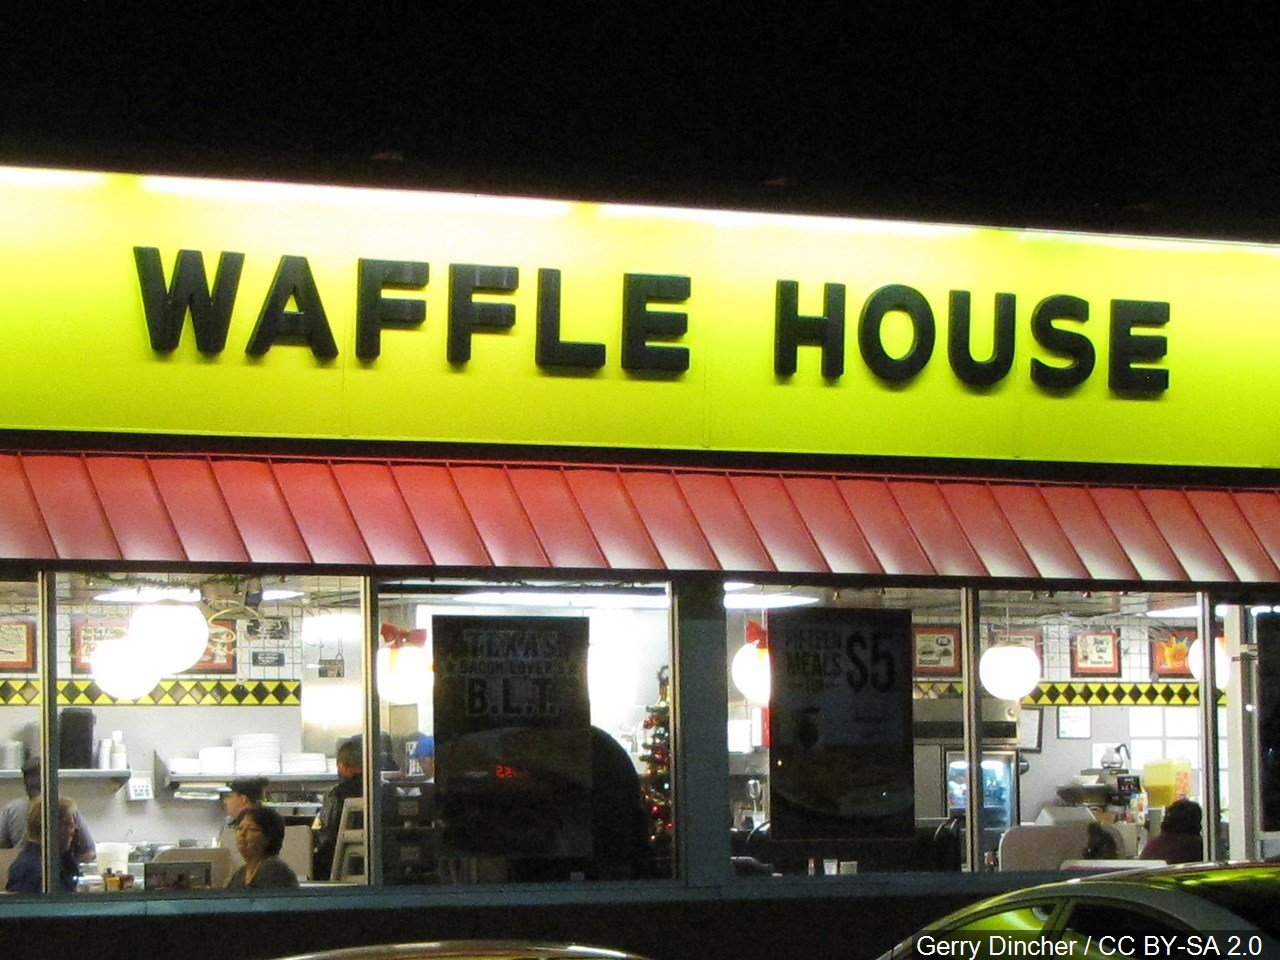 Man cooks own food after finding worker asleep inside Waffle House